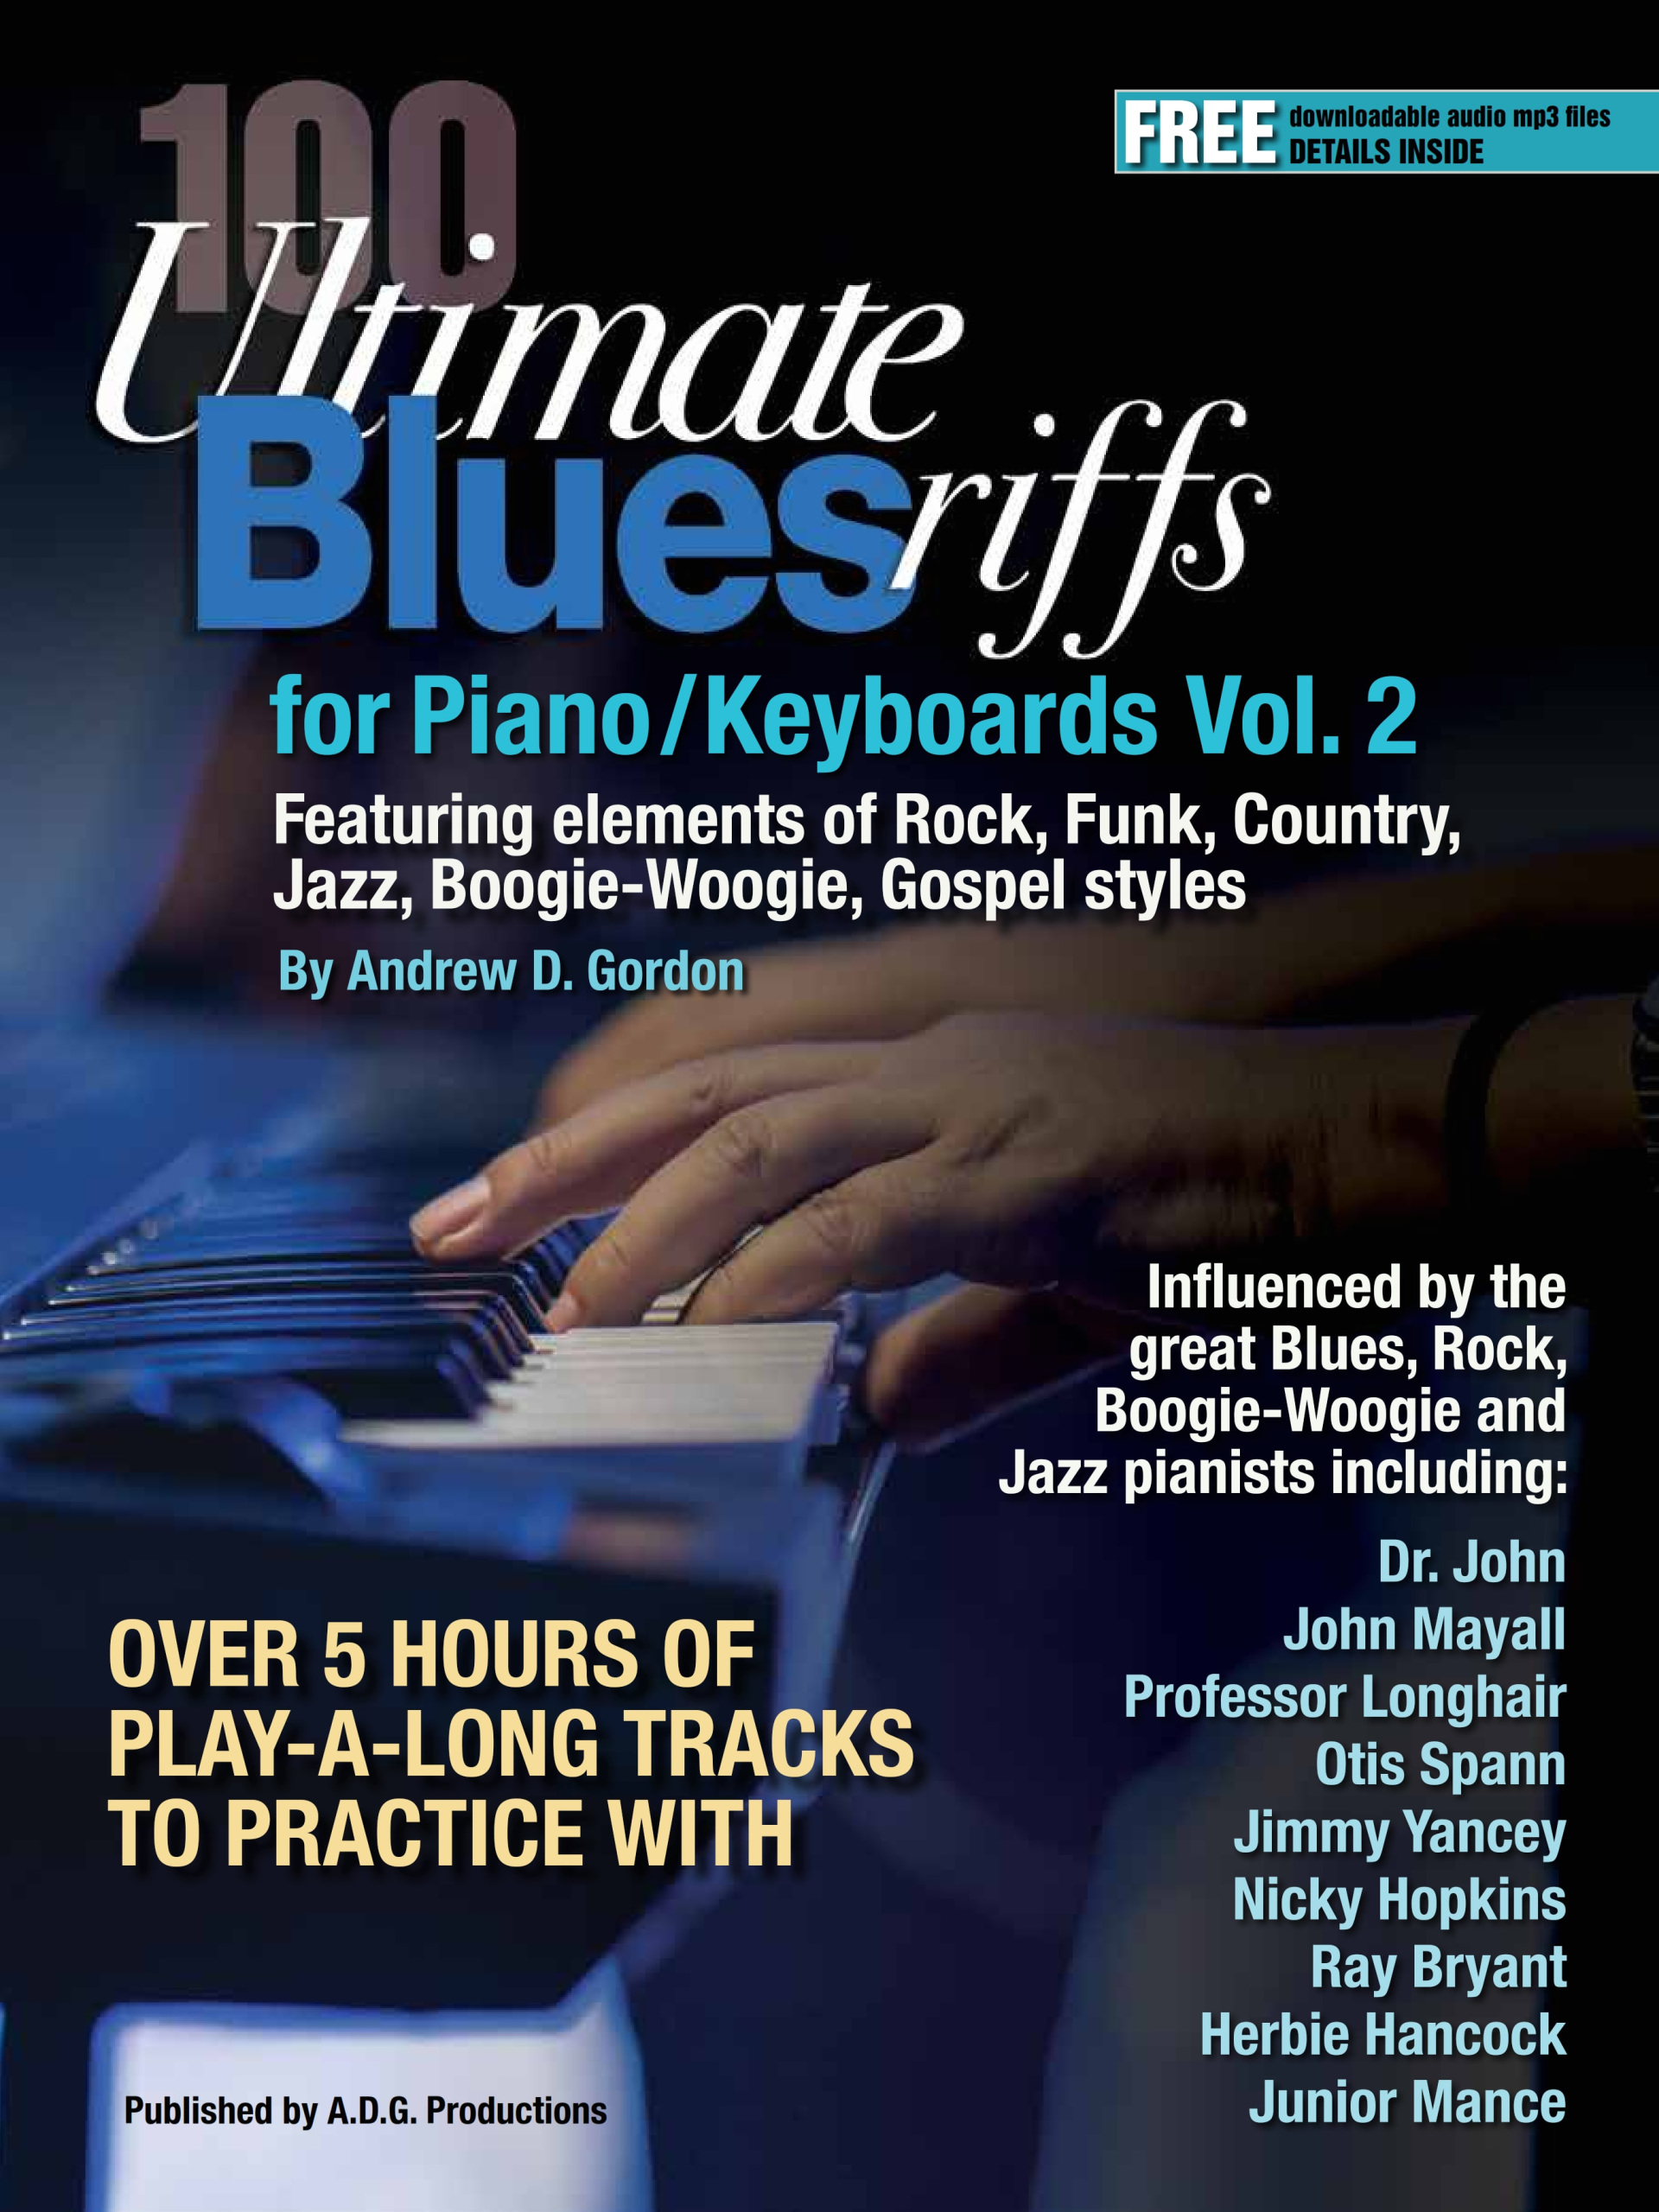 100 Ultimate Blues Riffs for Piano/Keyboards Volume 2 PDF/mp3/MIDI files  authored by Andrew D  Gordon